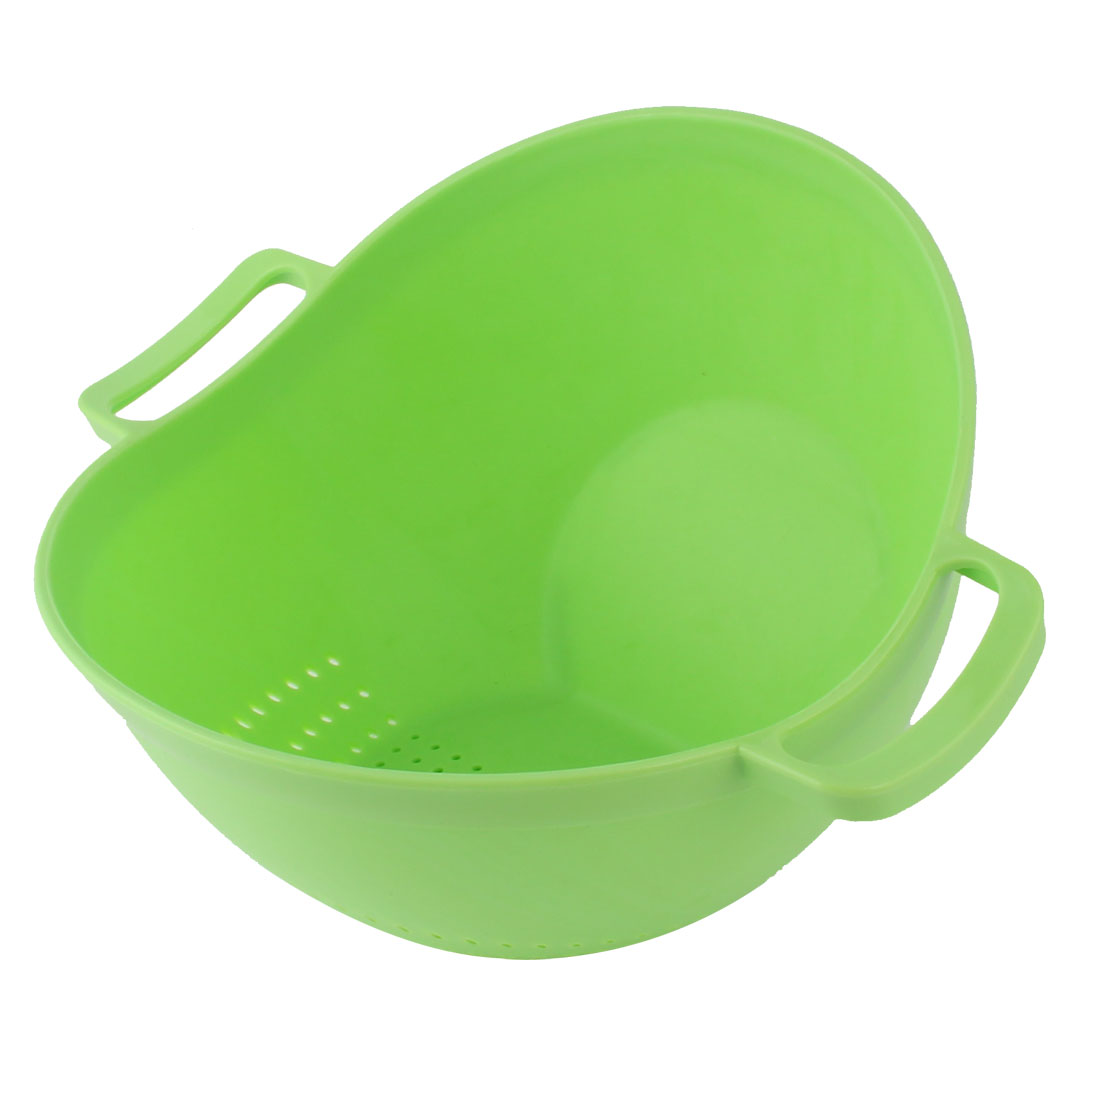 Home Kitchenware Plastic Wash Rice Sieve Vegetables Basin Cleaning Tool Green